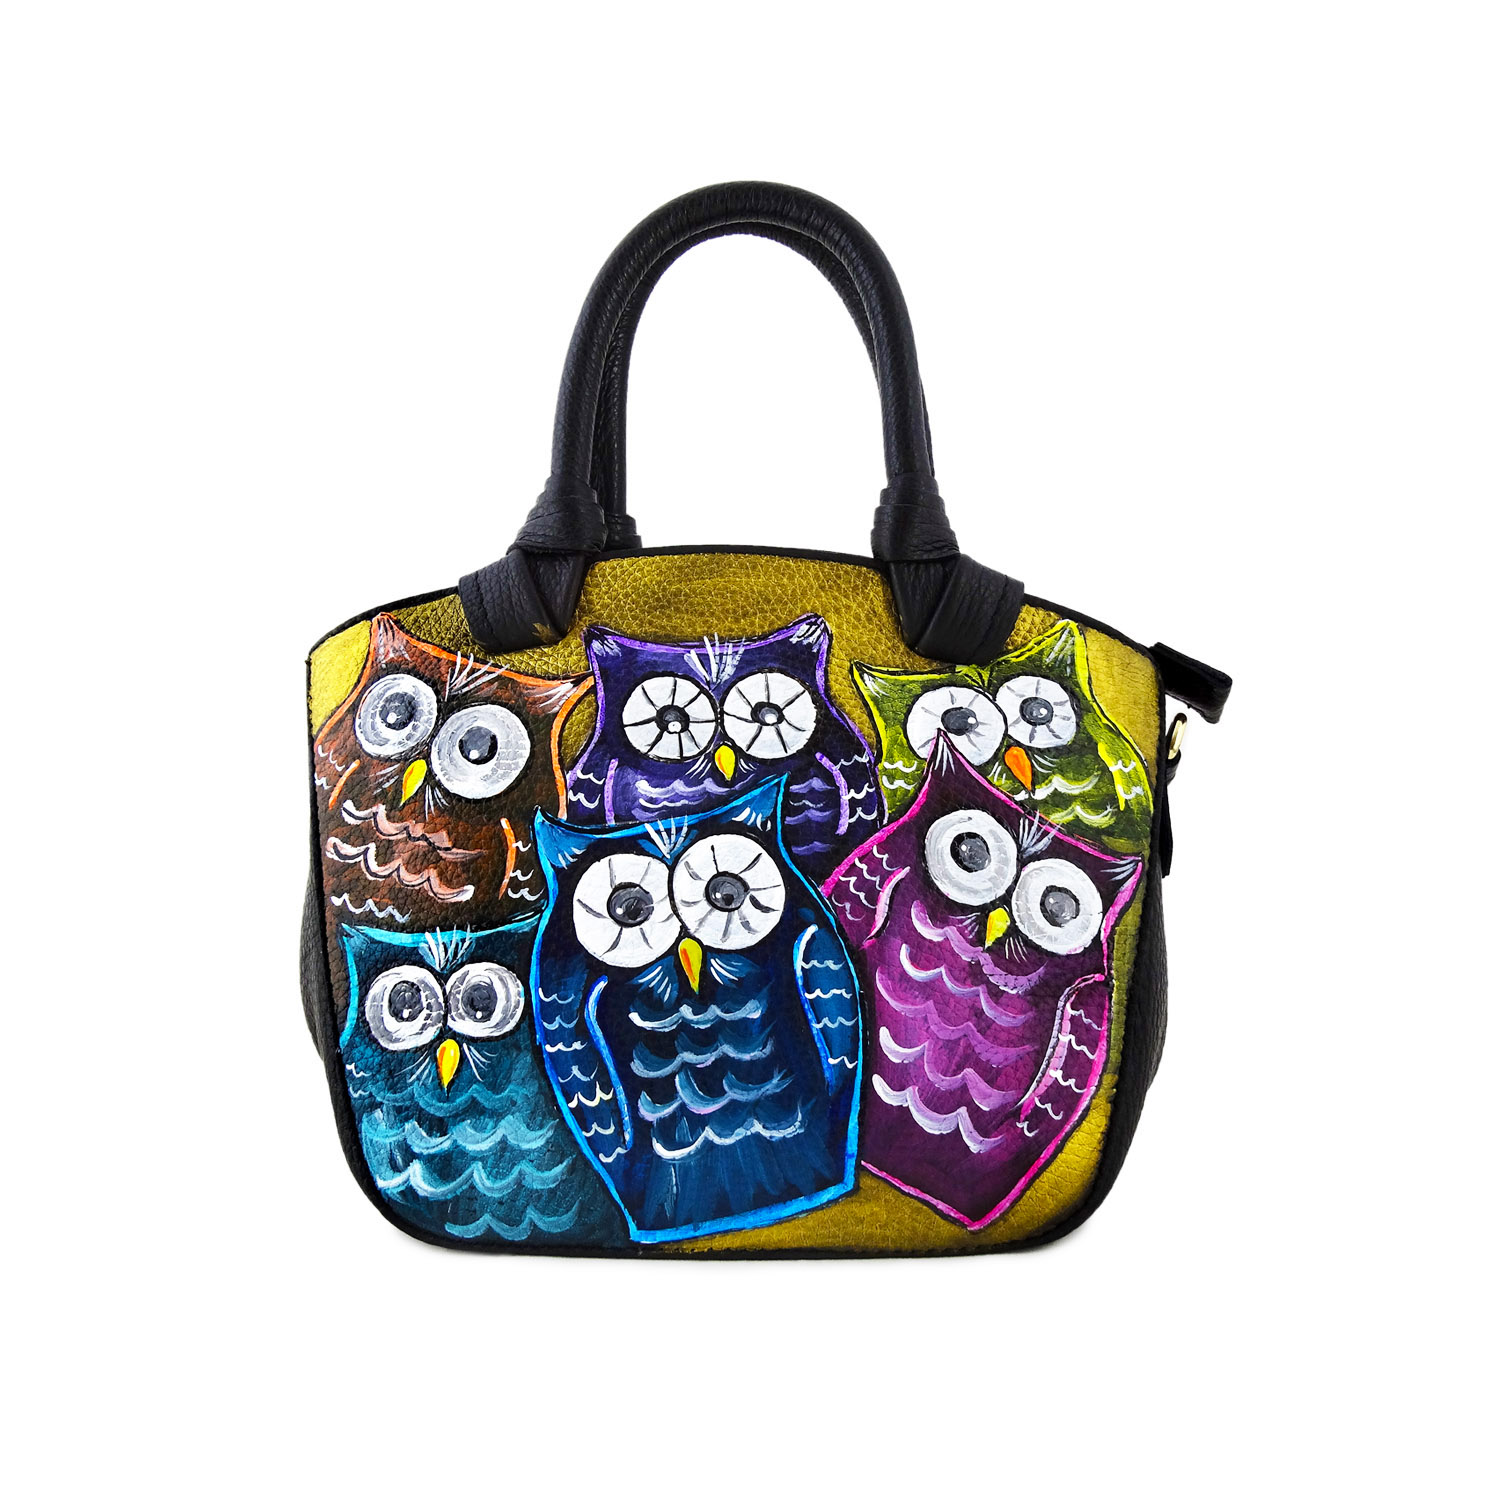 Hand-painted bag - Owl